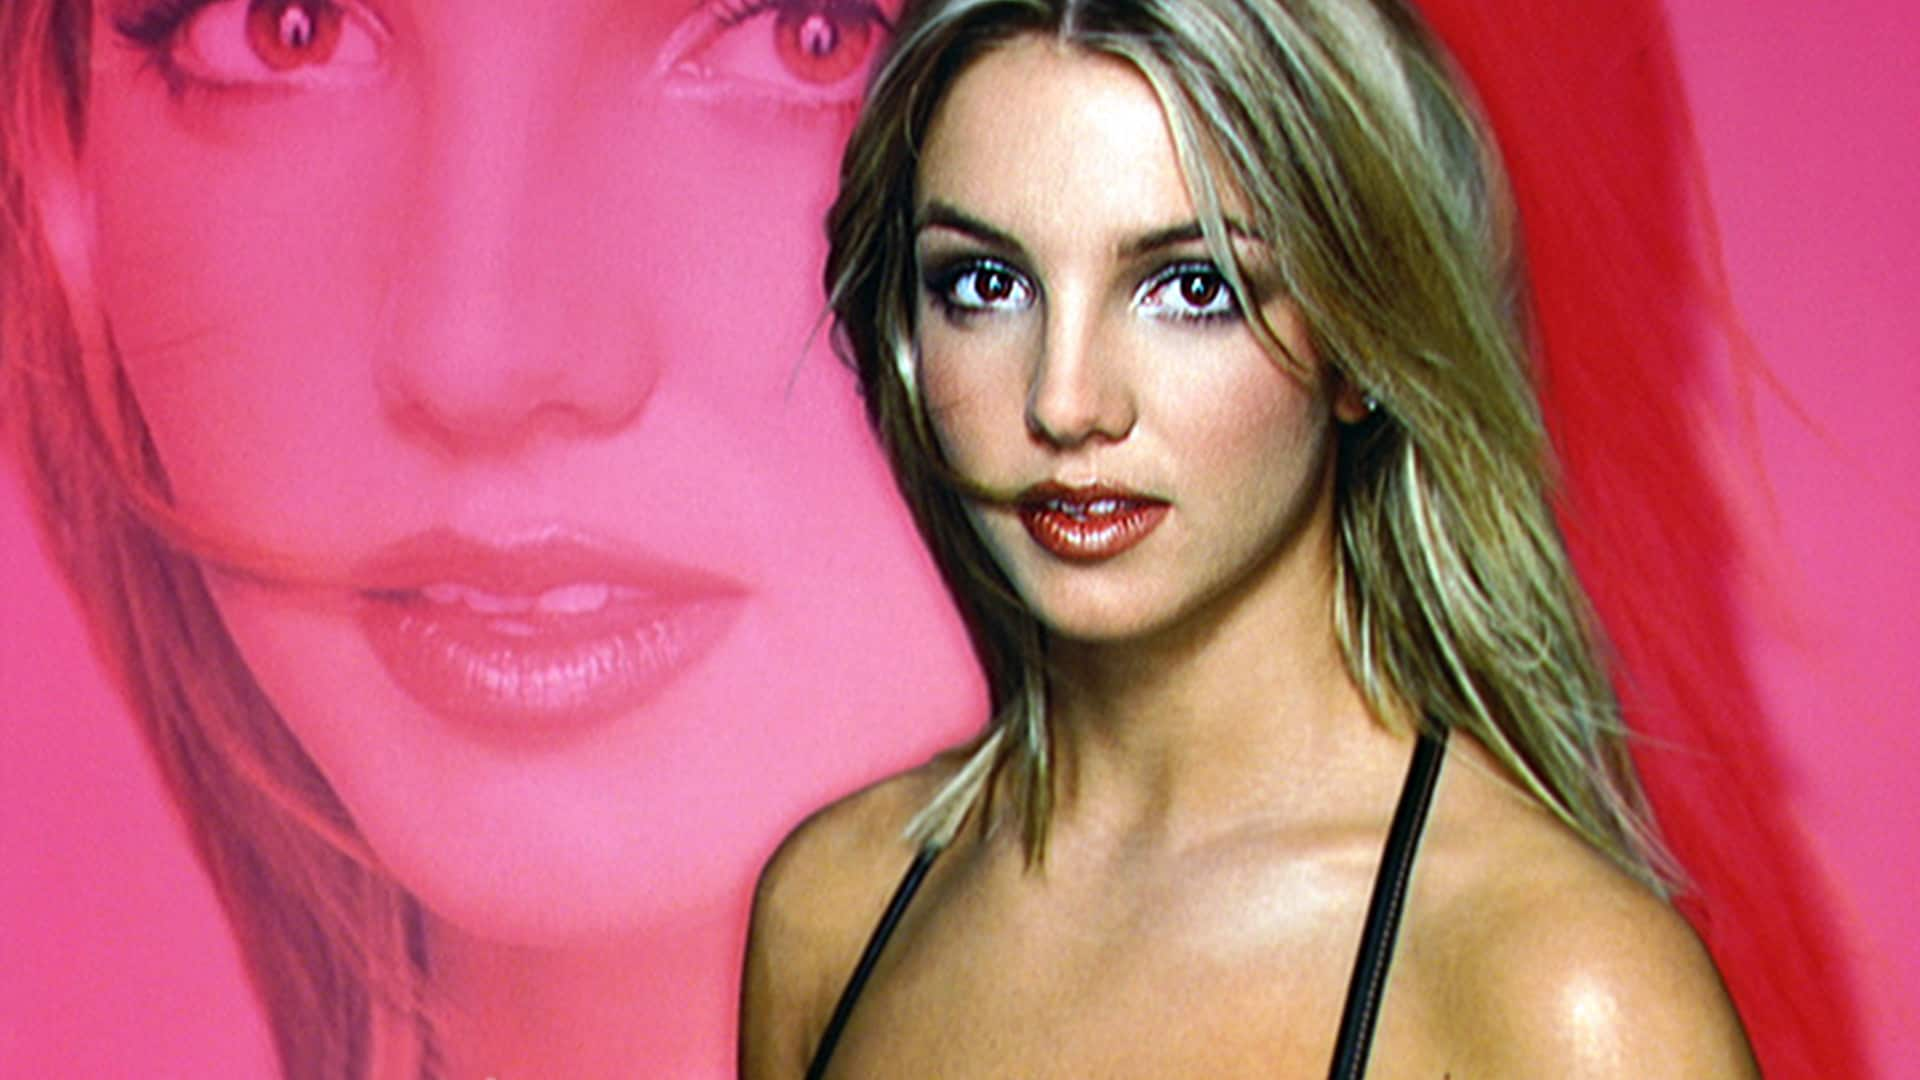 Britney Spears: May 13, 2000